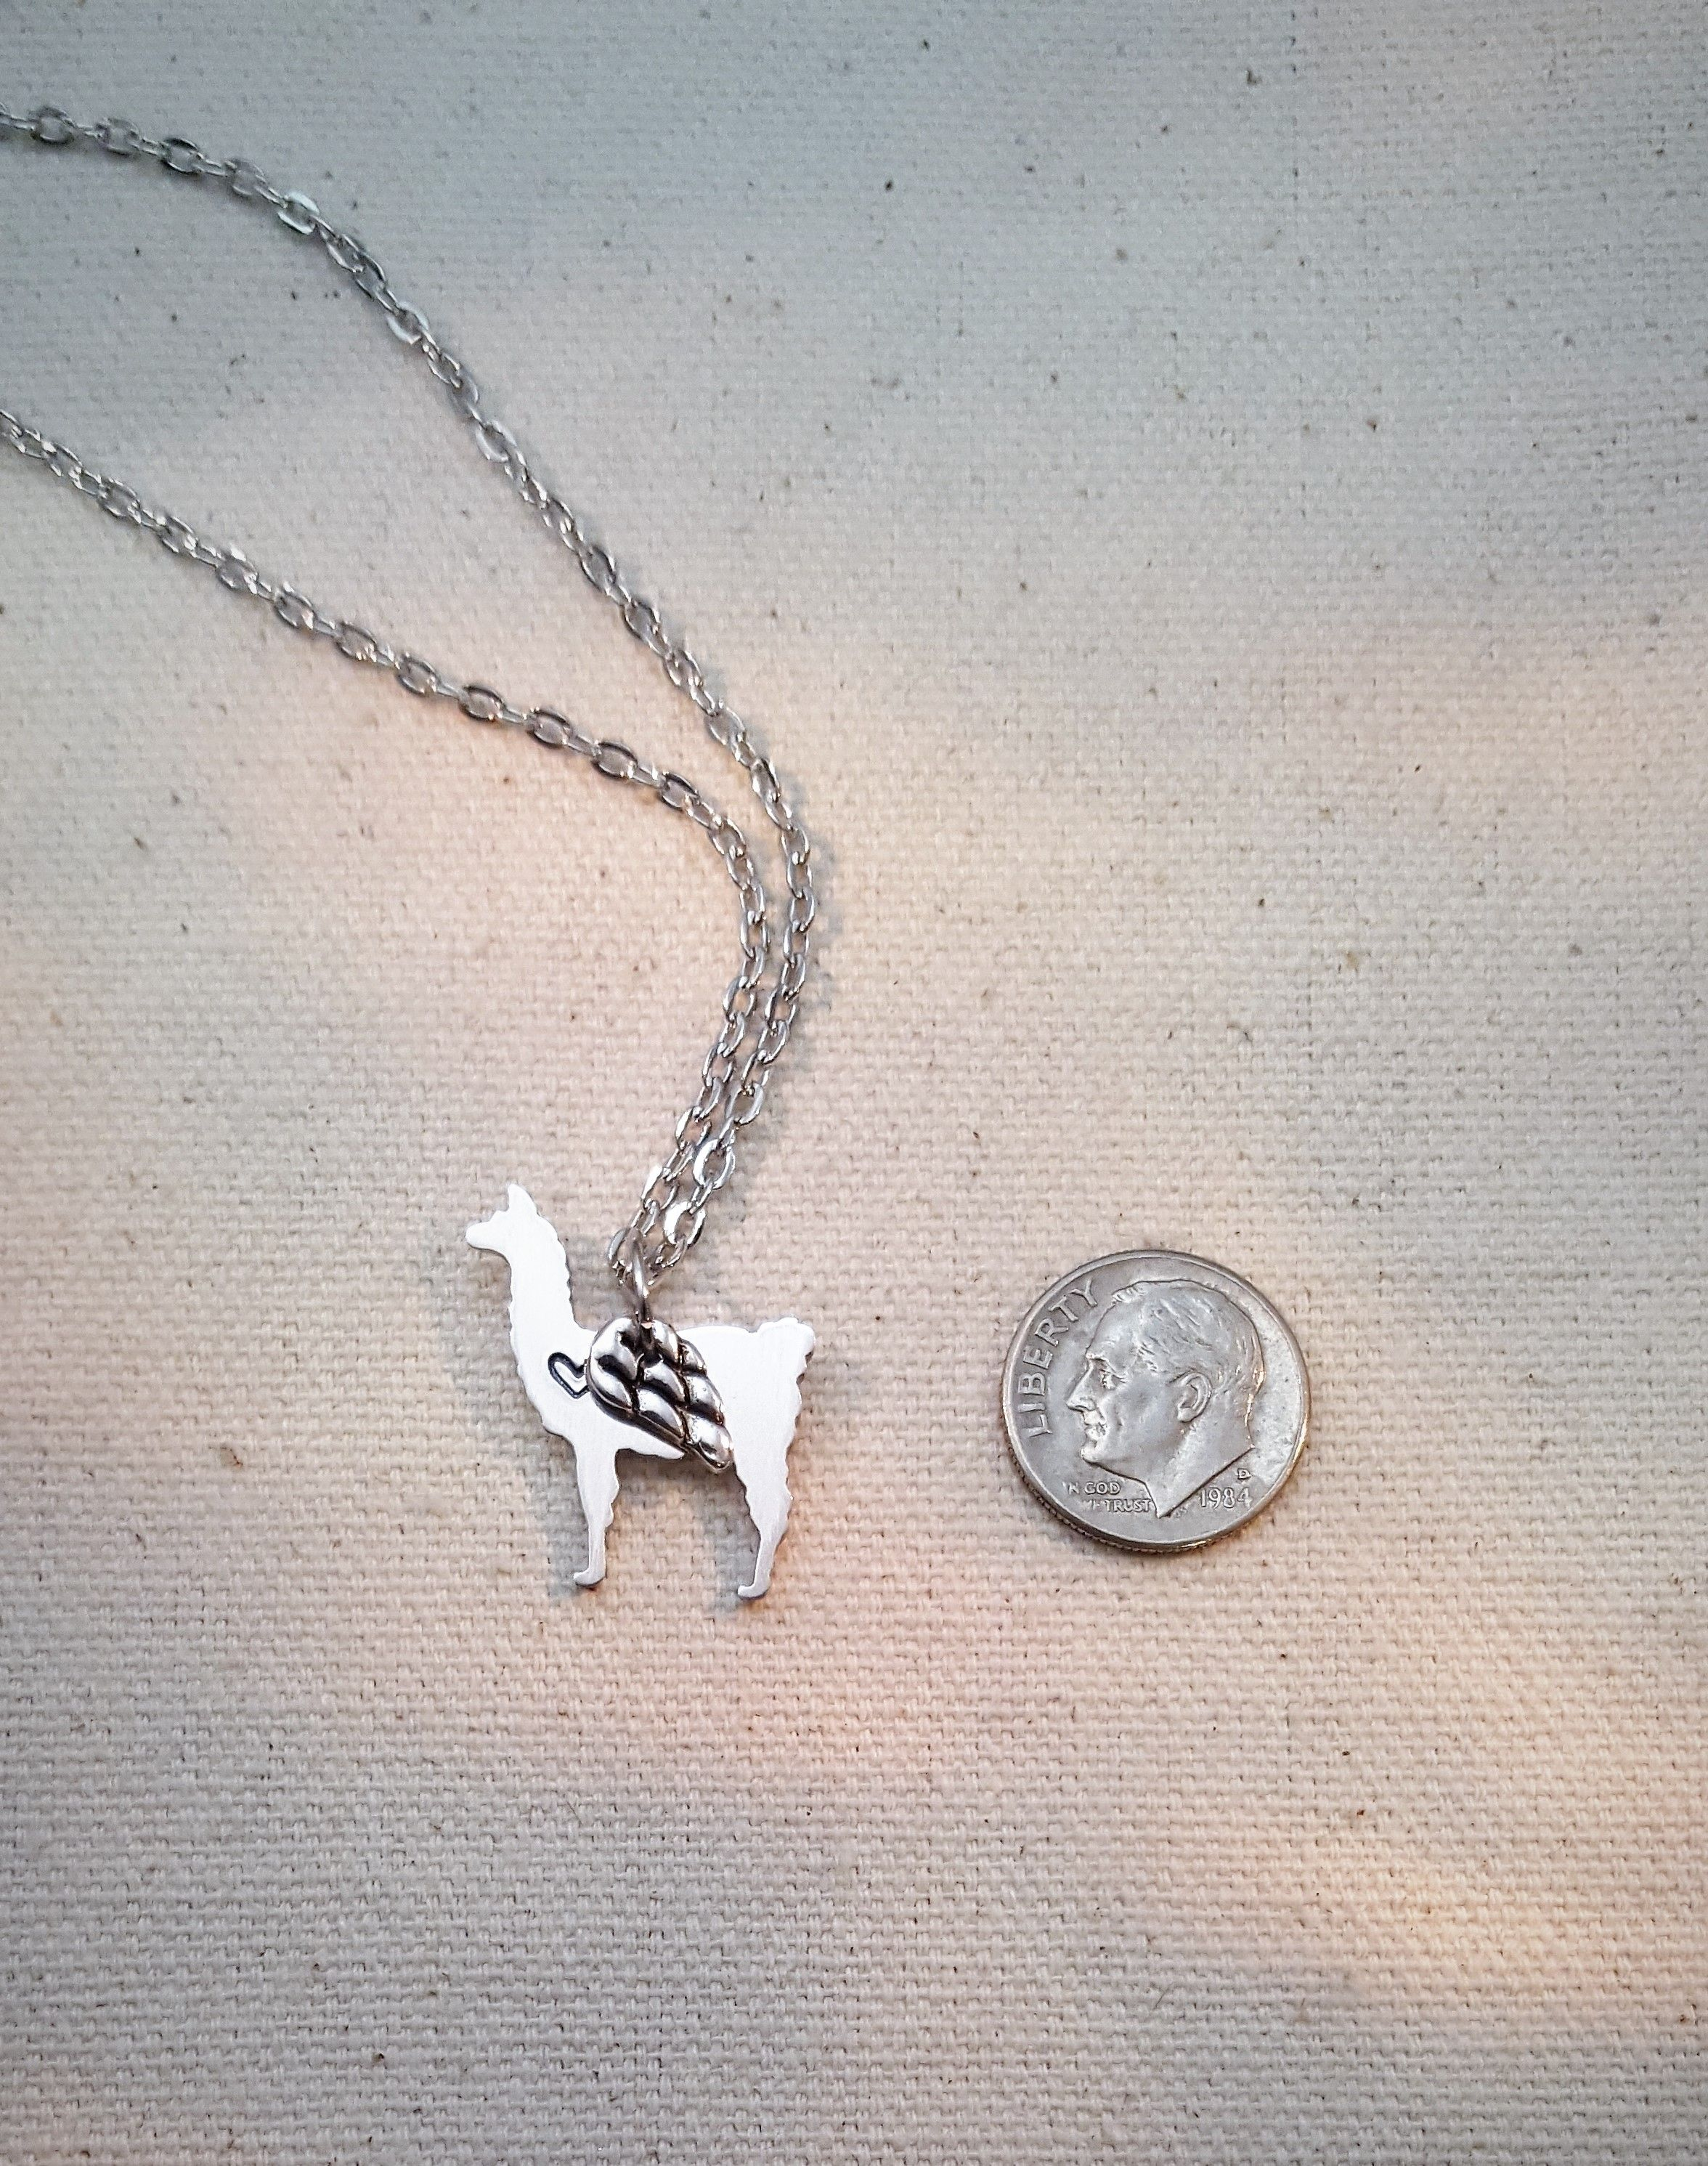 jewelry johnston portfolio necklace hammerhead katie s blog little shark wild